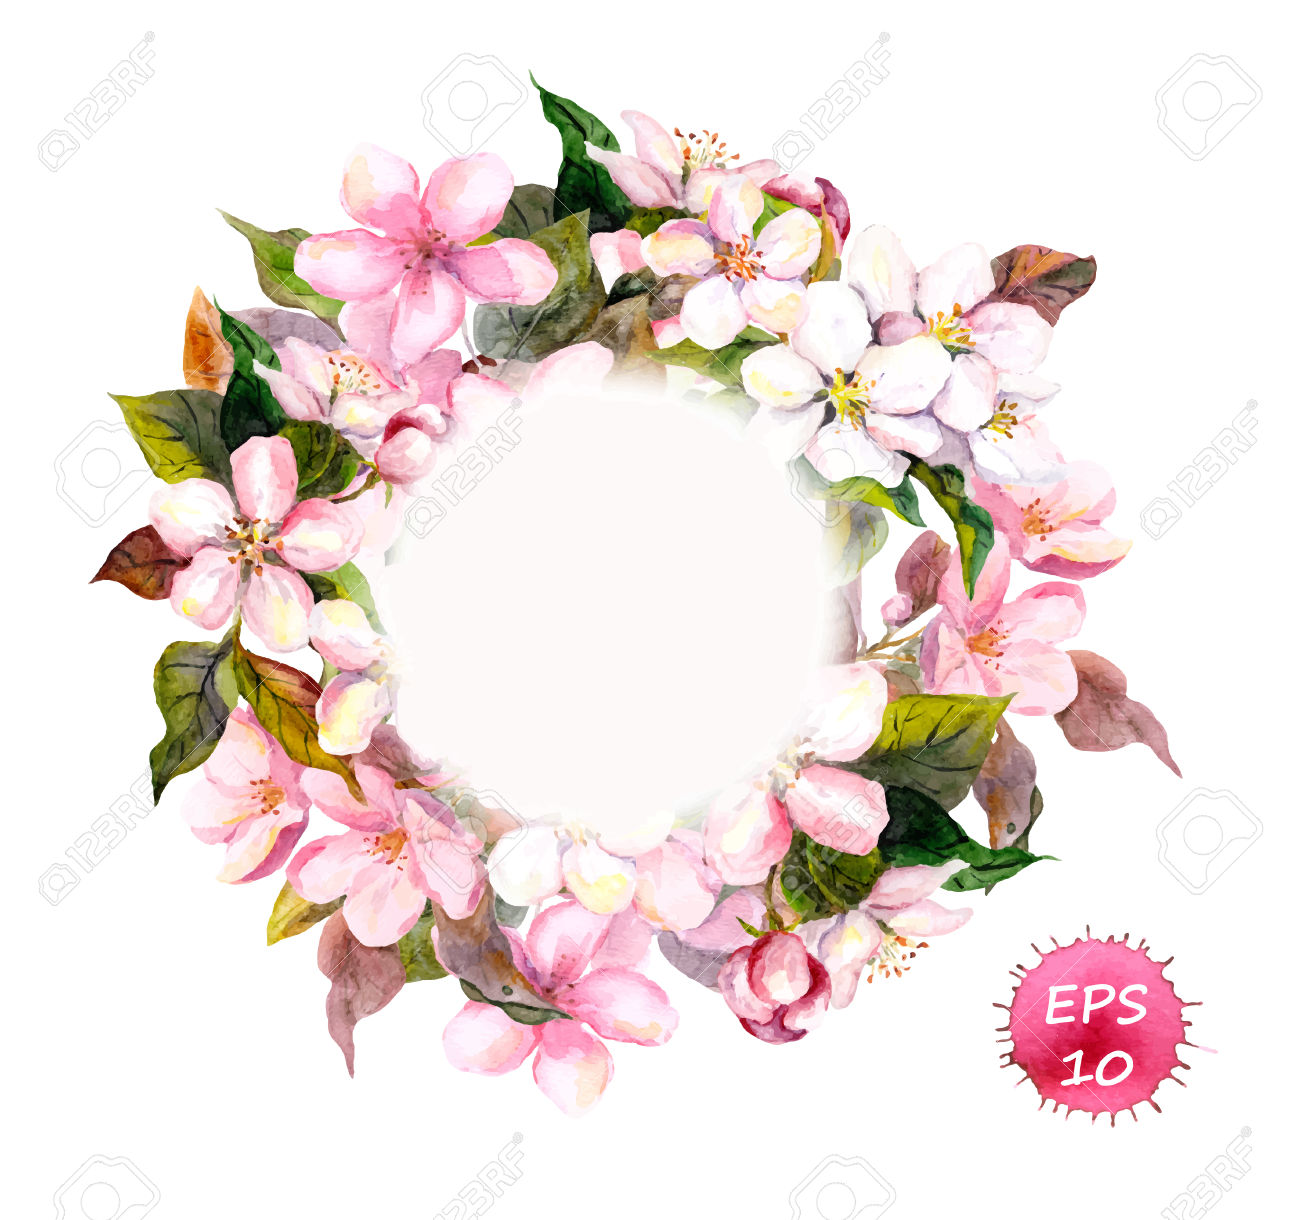 Frame Wreath With Cherry, Apple, Almond Flowers Blossom.